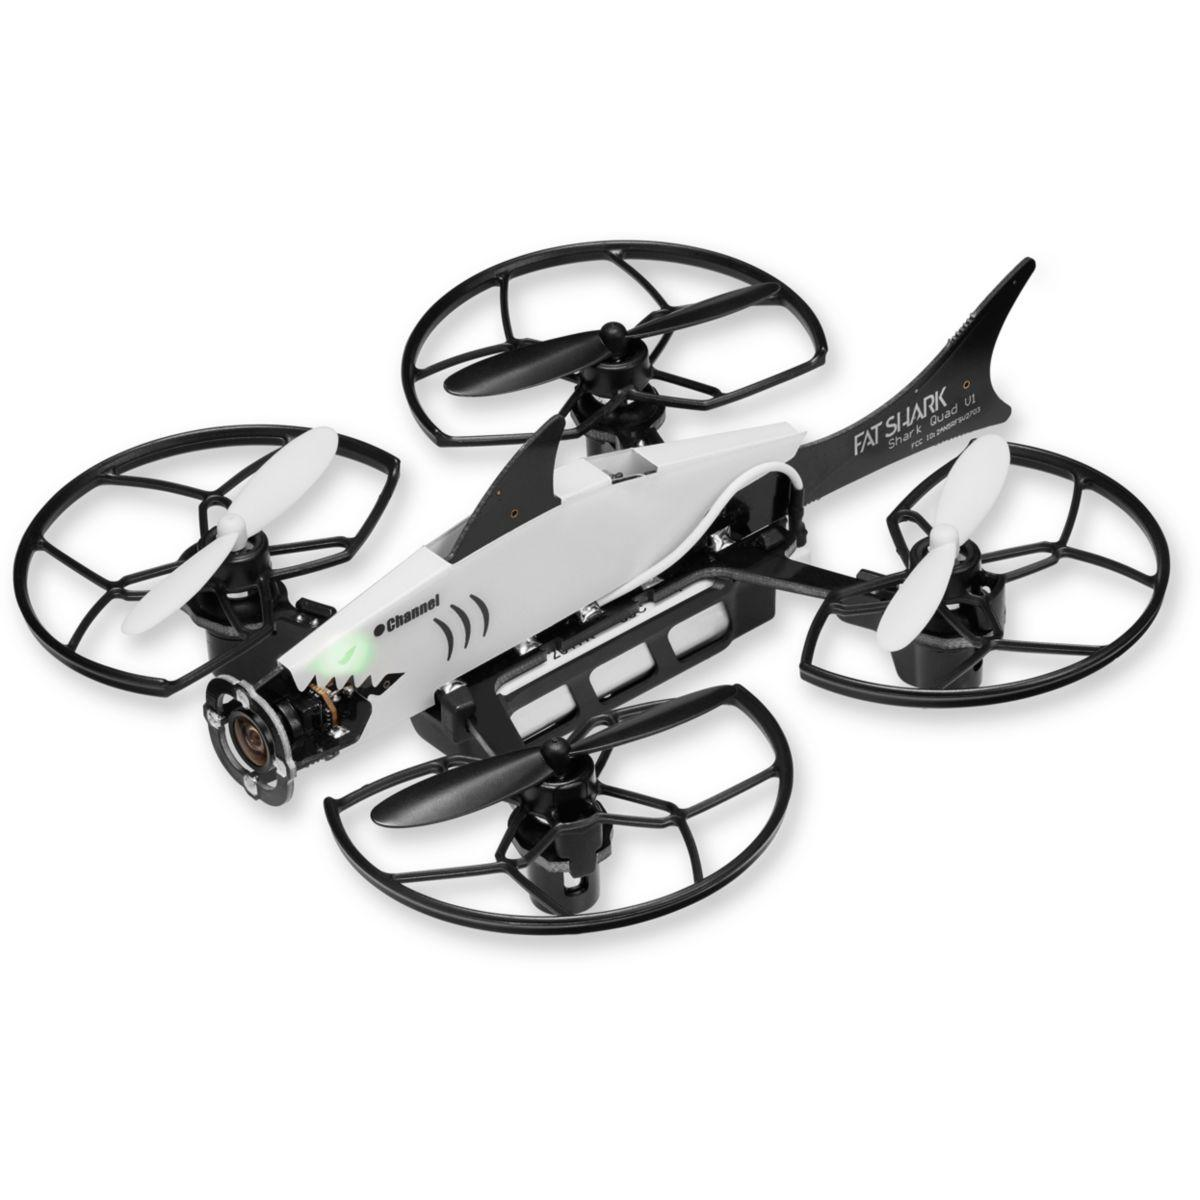 Drone fatshark fat shark - 7% de remise imm�diate avec le code : deal7 (photo)